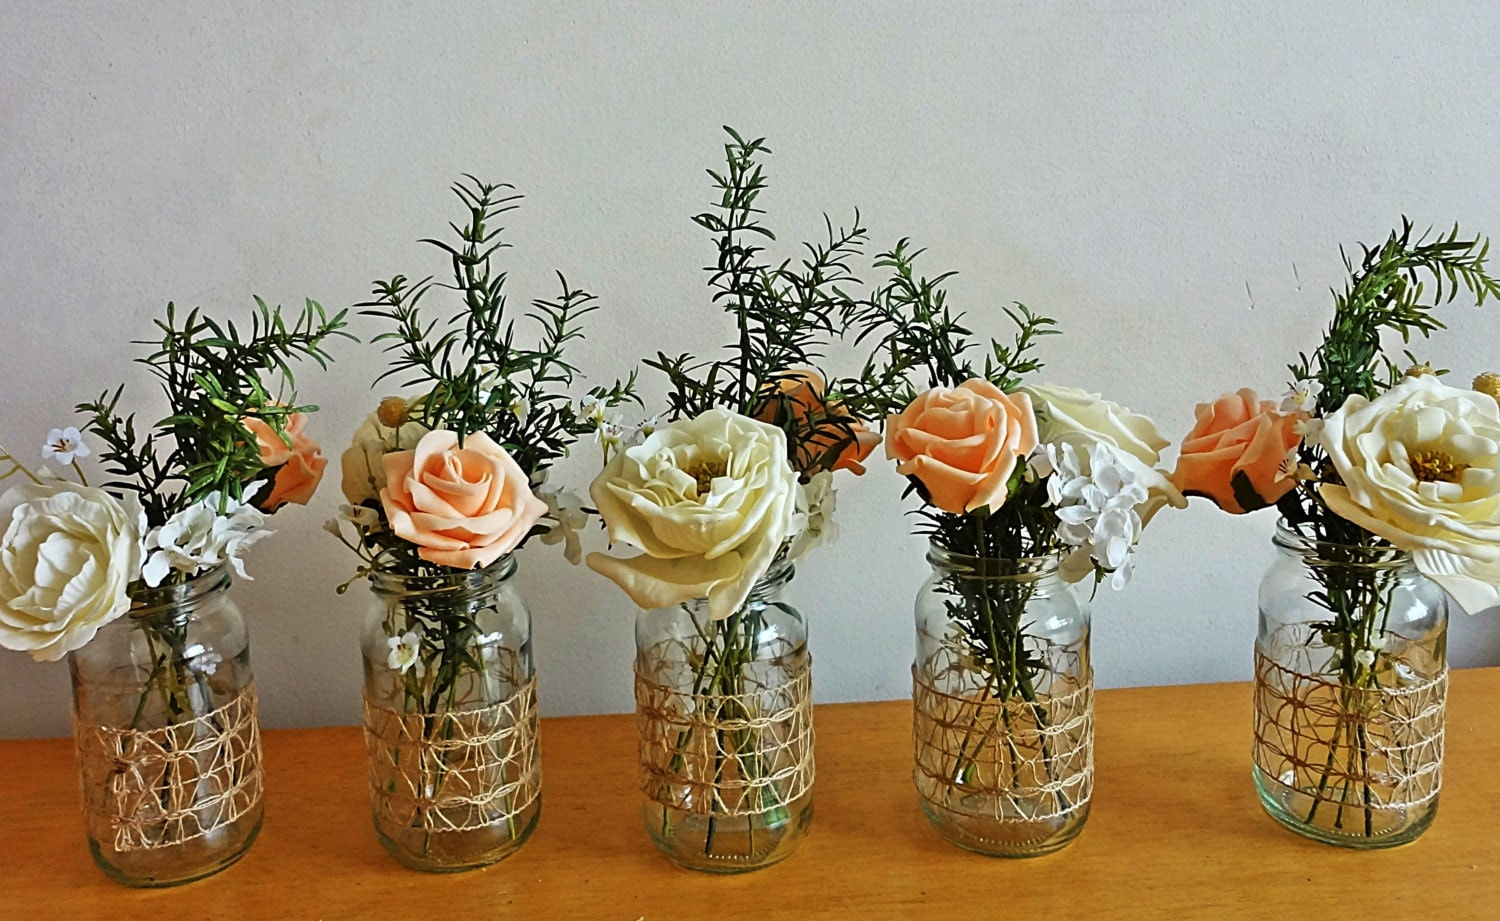 Rustic spring summer wedding jar centerpieces flowers for jars for Table arrangements